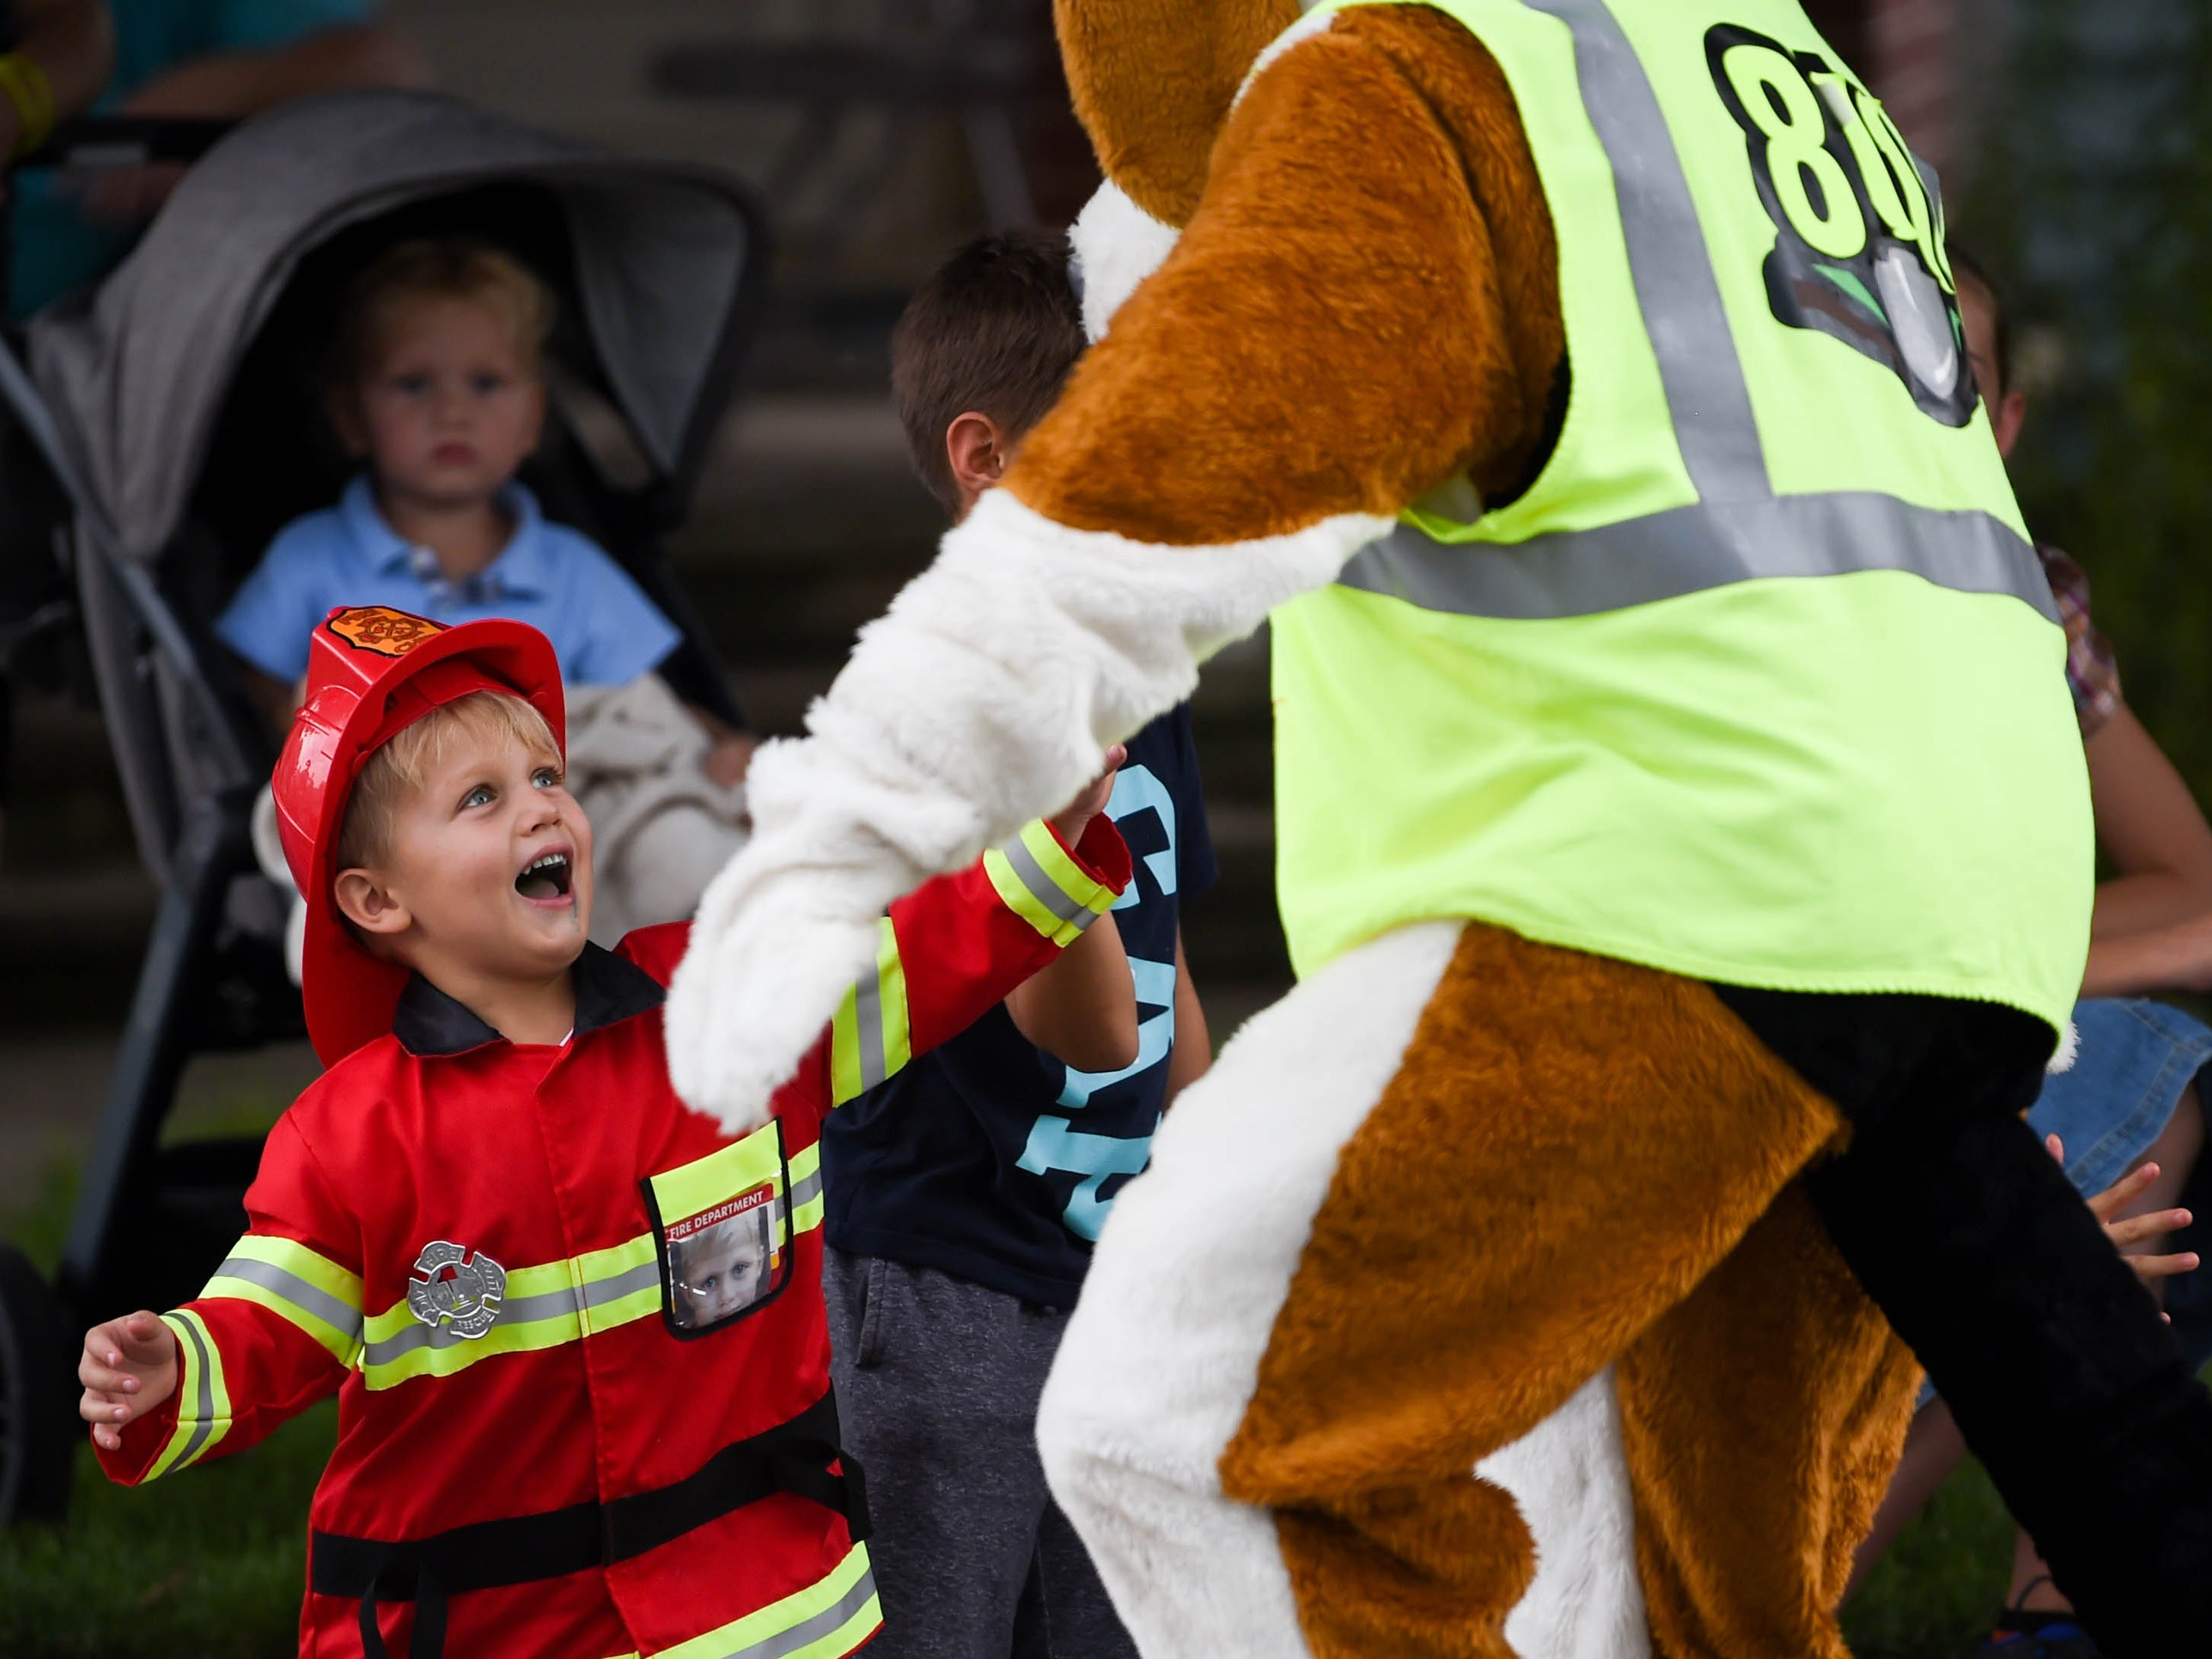 Manuel Golotin, 3, hugs Digger Dog during the York County Fireman's Parade, celebrating Alert Fire Company's 100th year, Saturday, August 18, 2018.